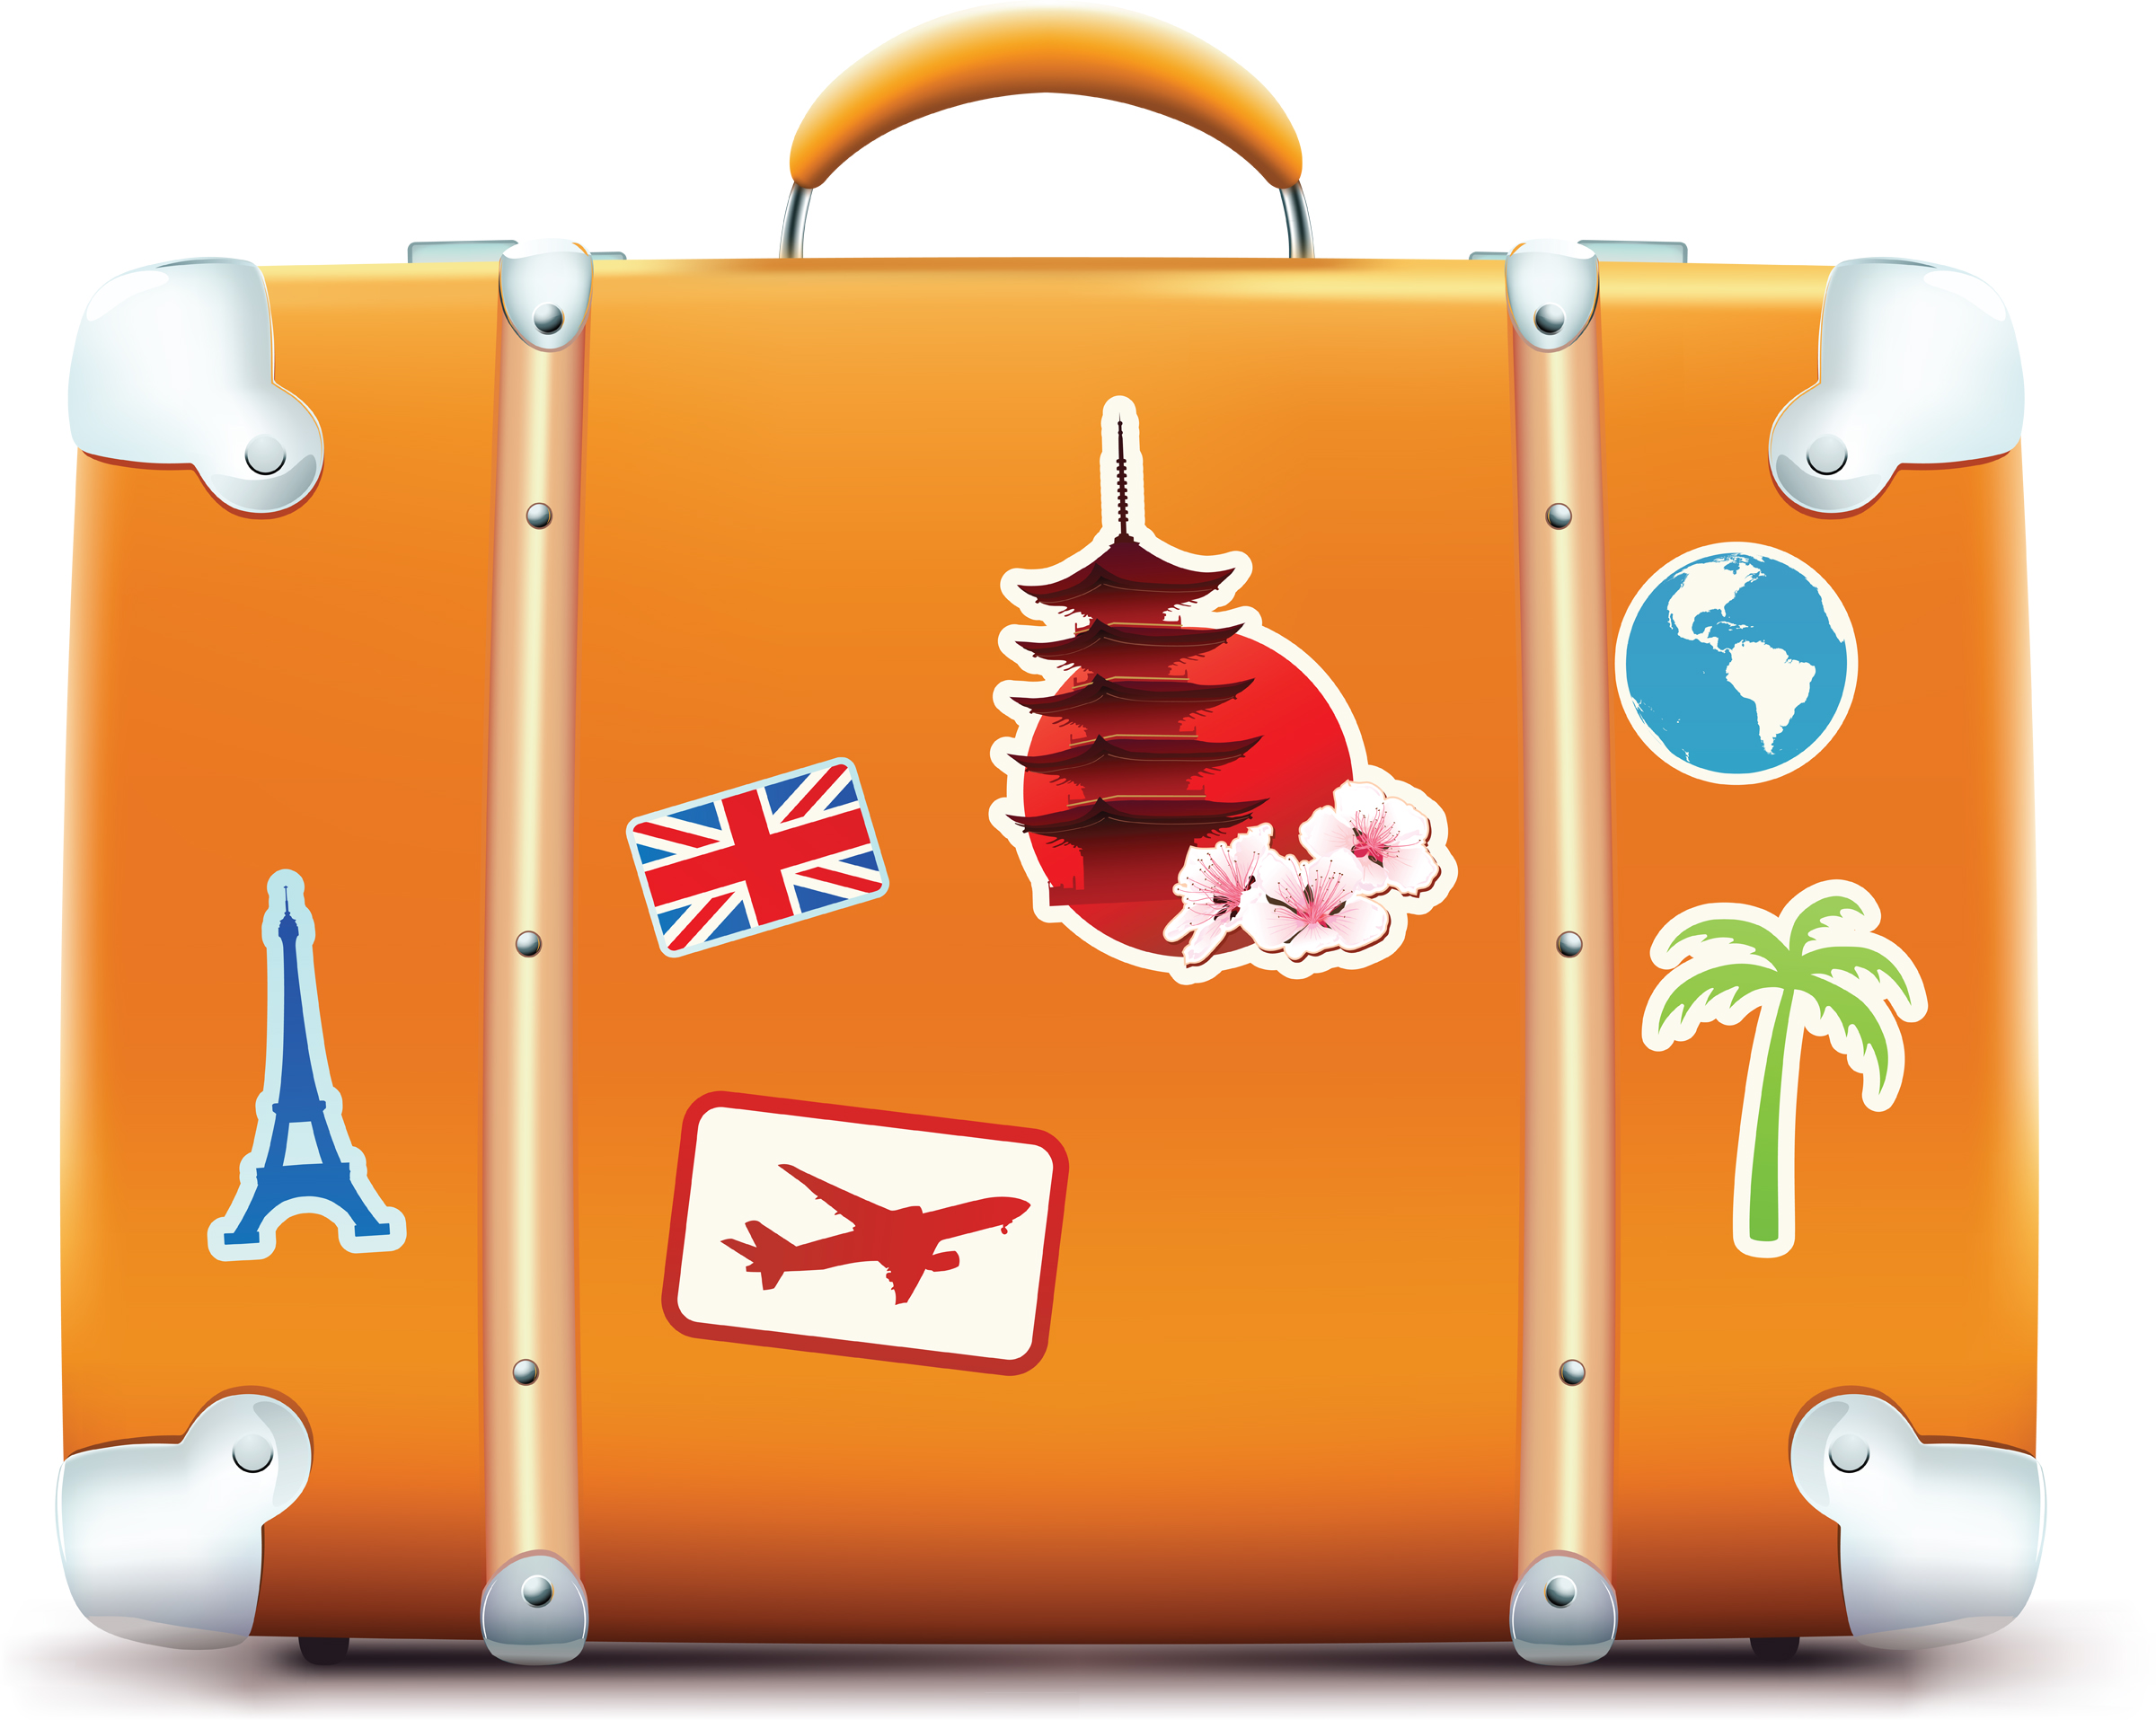 Luggage Clipart.